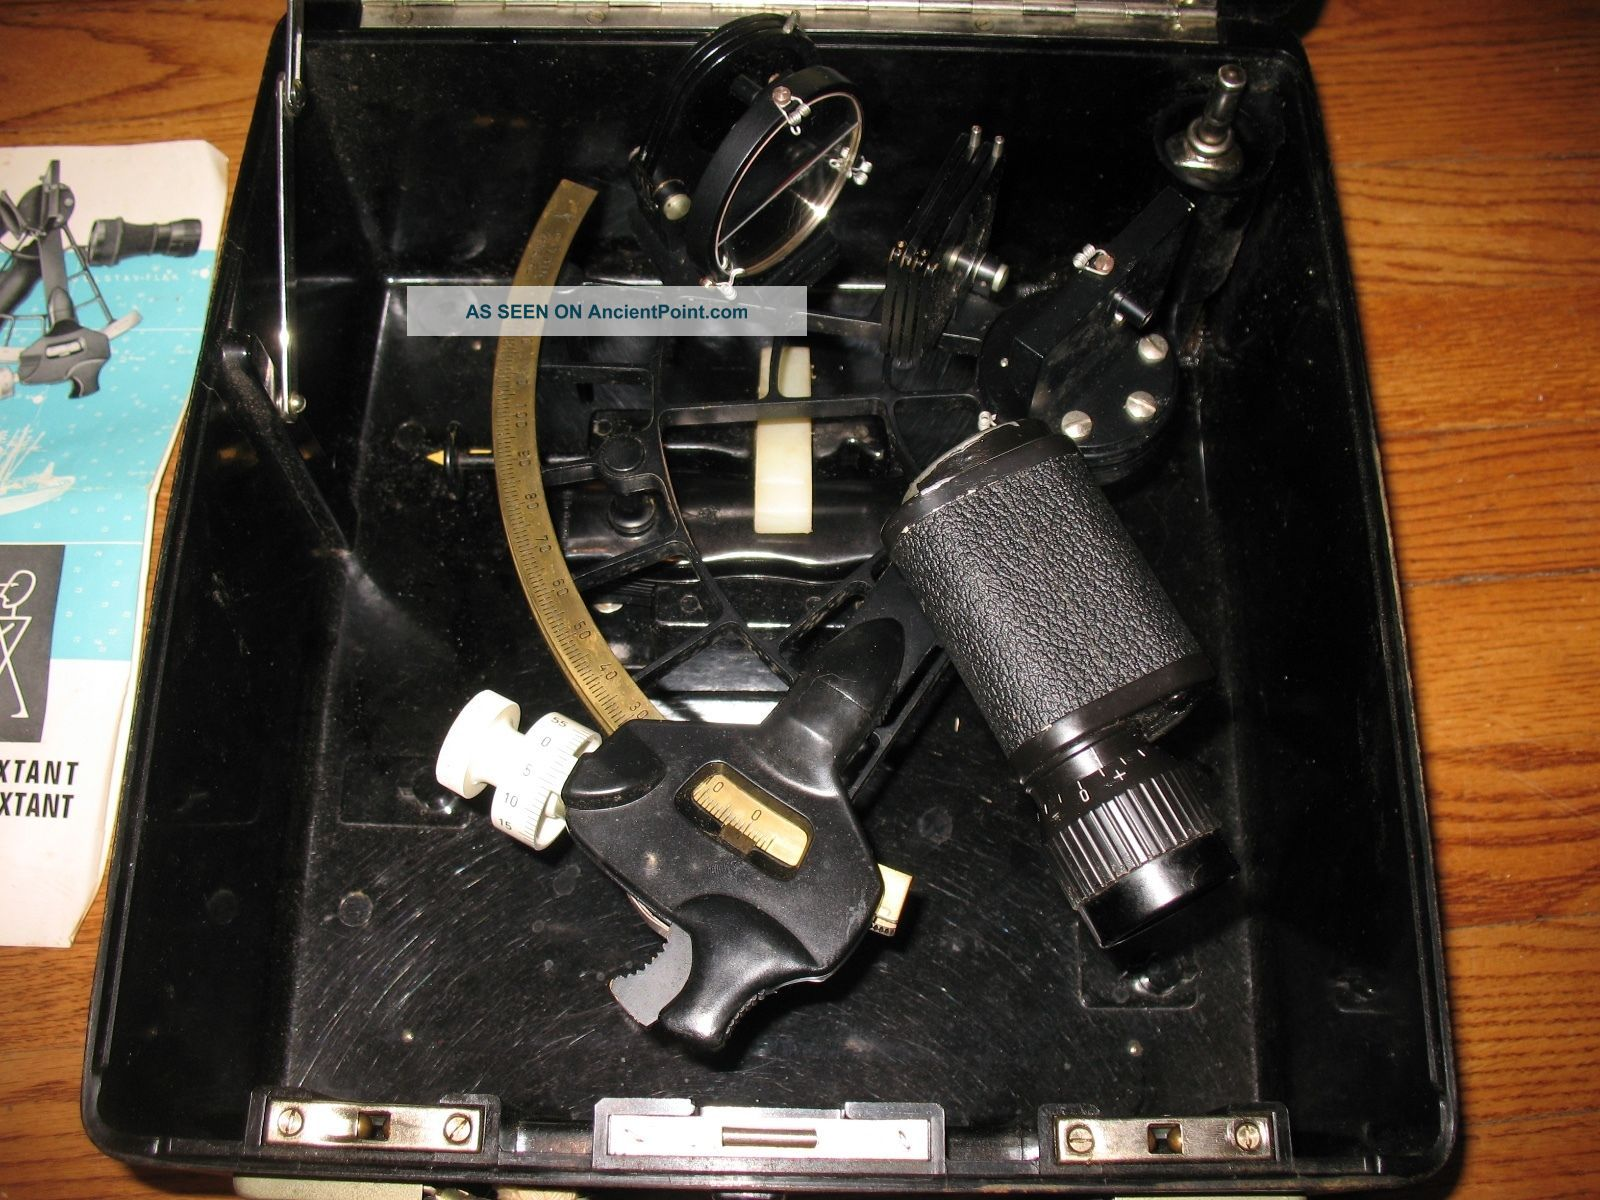 C.  Plath Model 50410 Nautical Micrometer Sextant With Bakelite Case - Germany Sextants photo